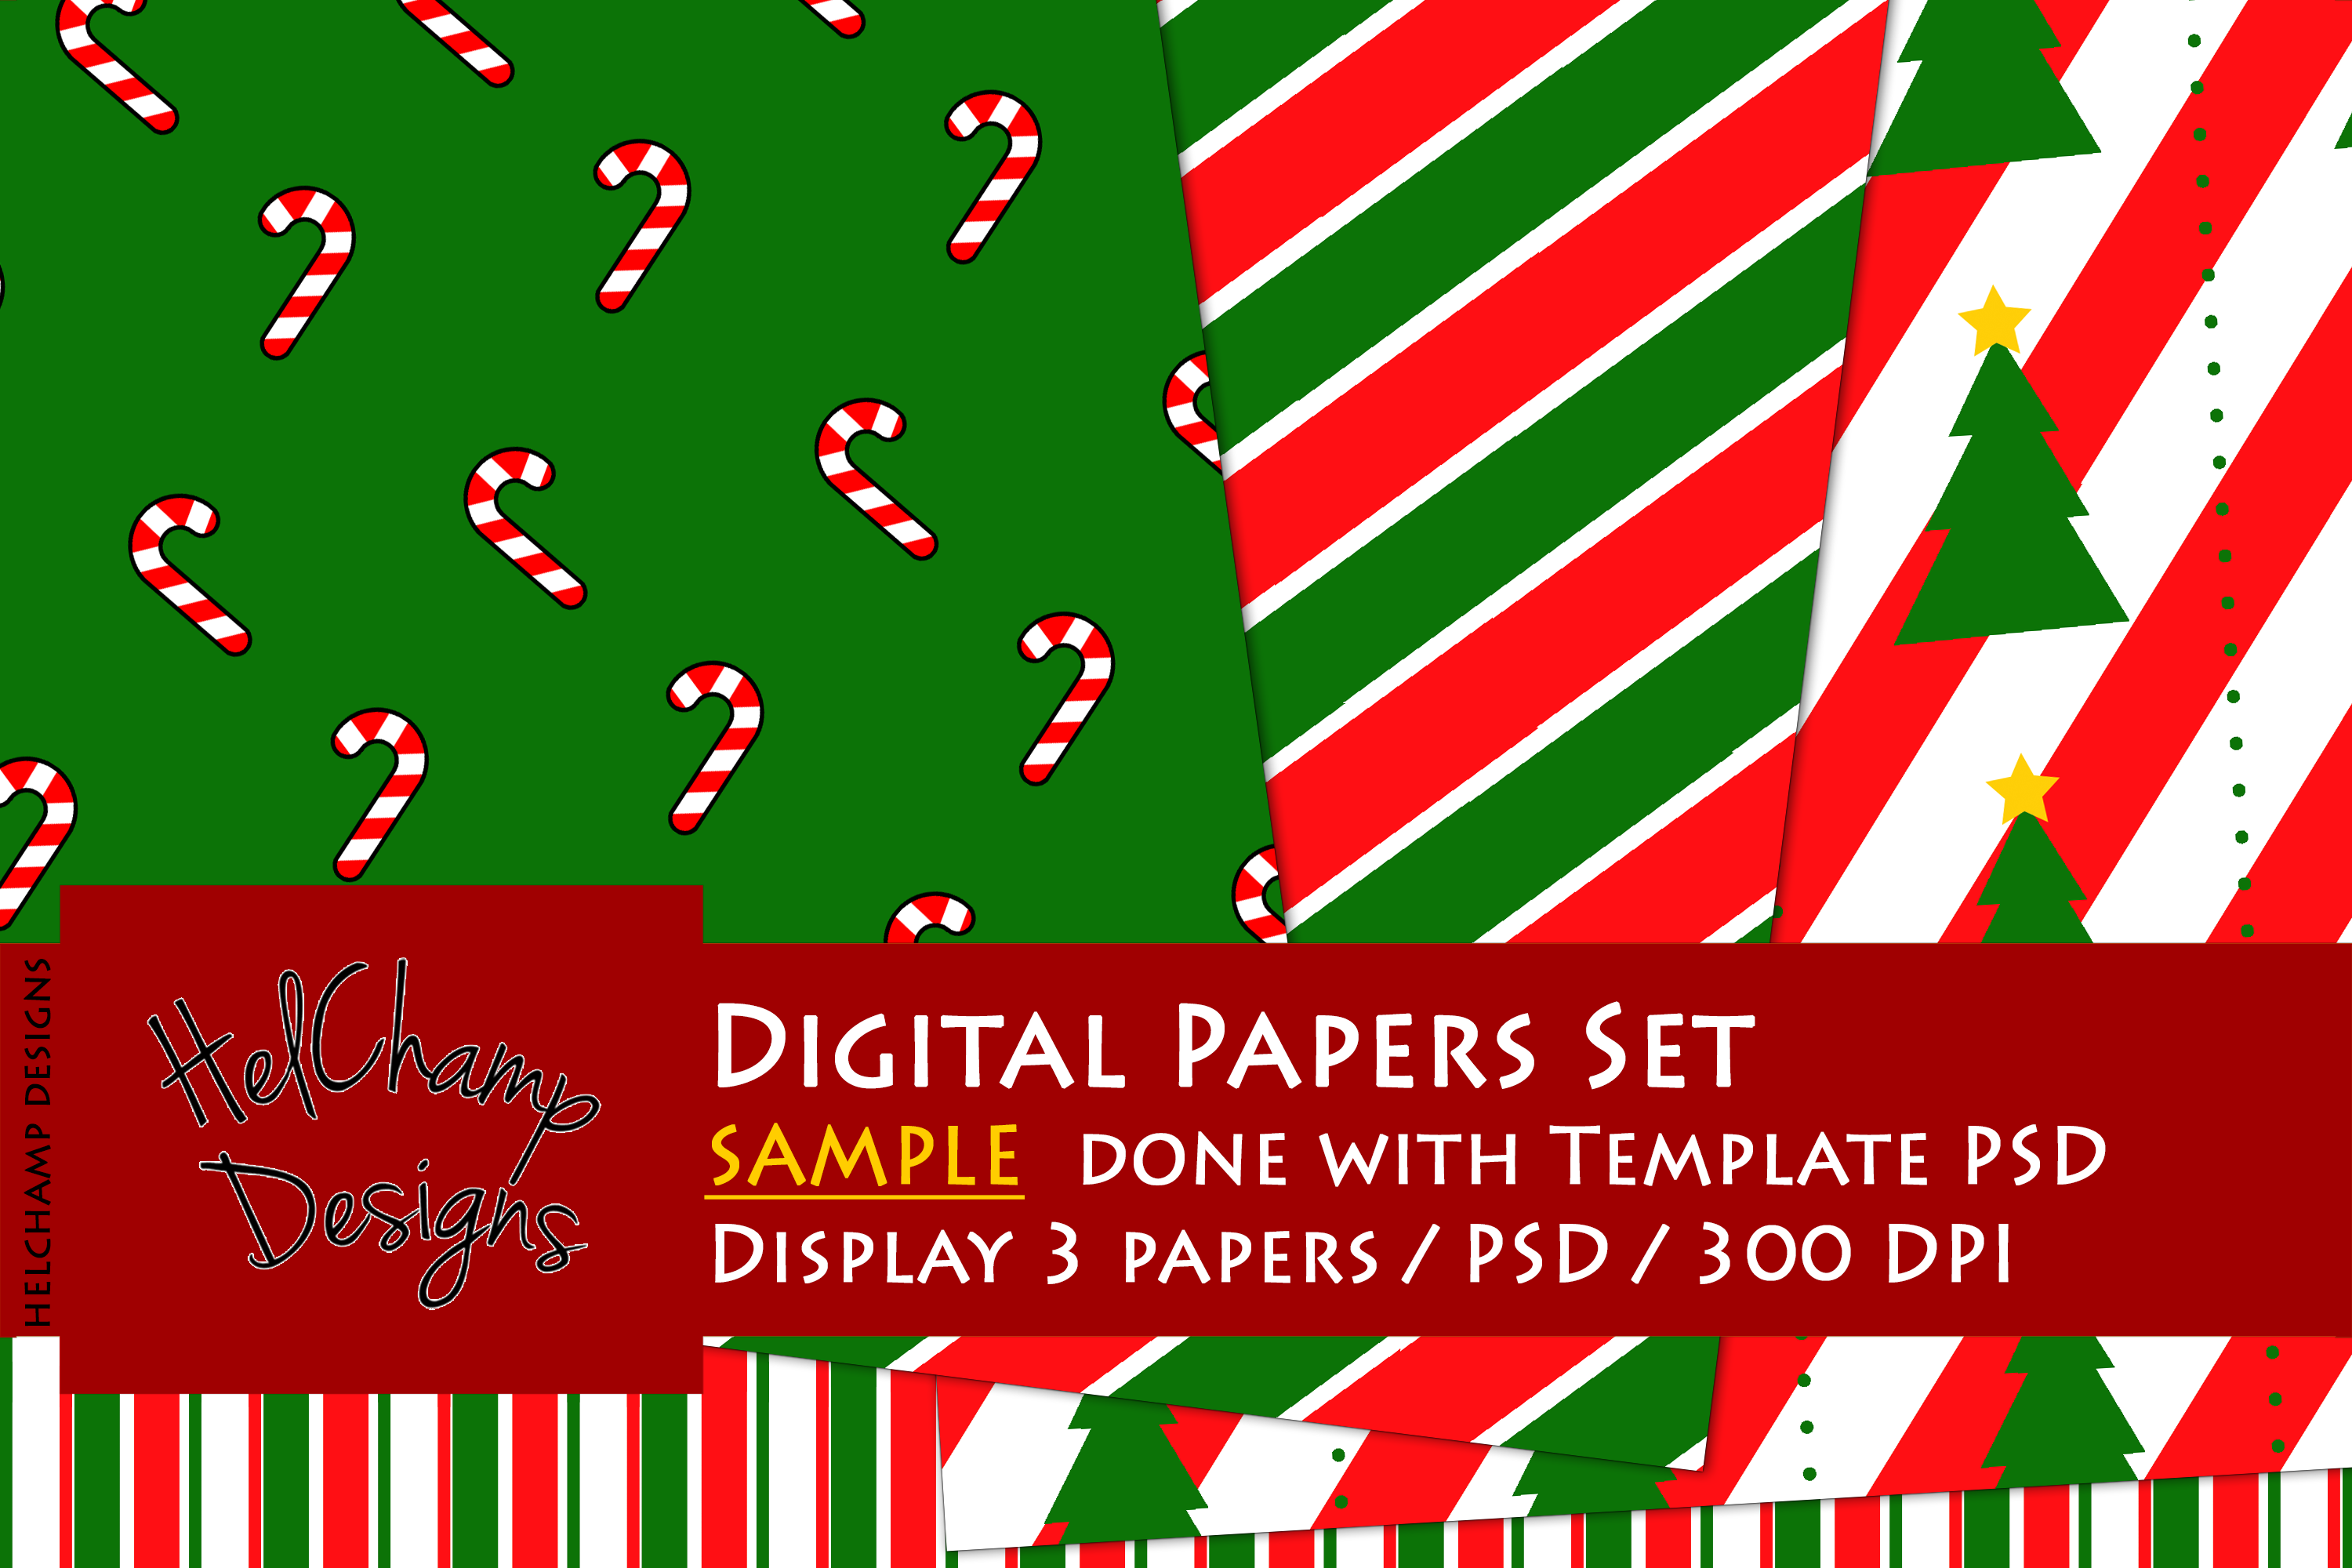 3 Panels Mockup for Digital Papers - M05 example image 4